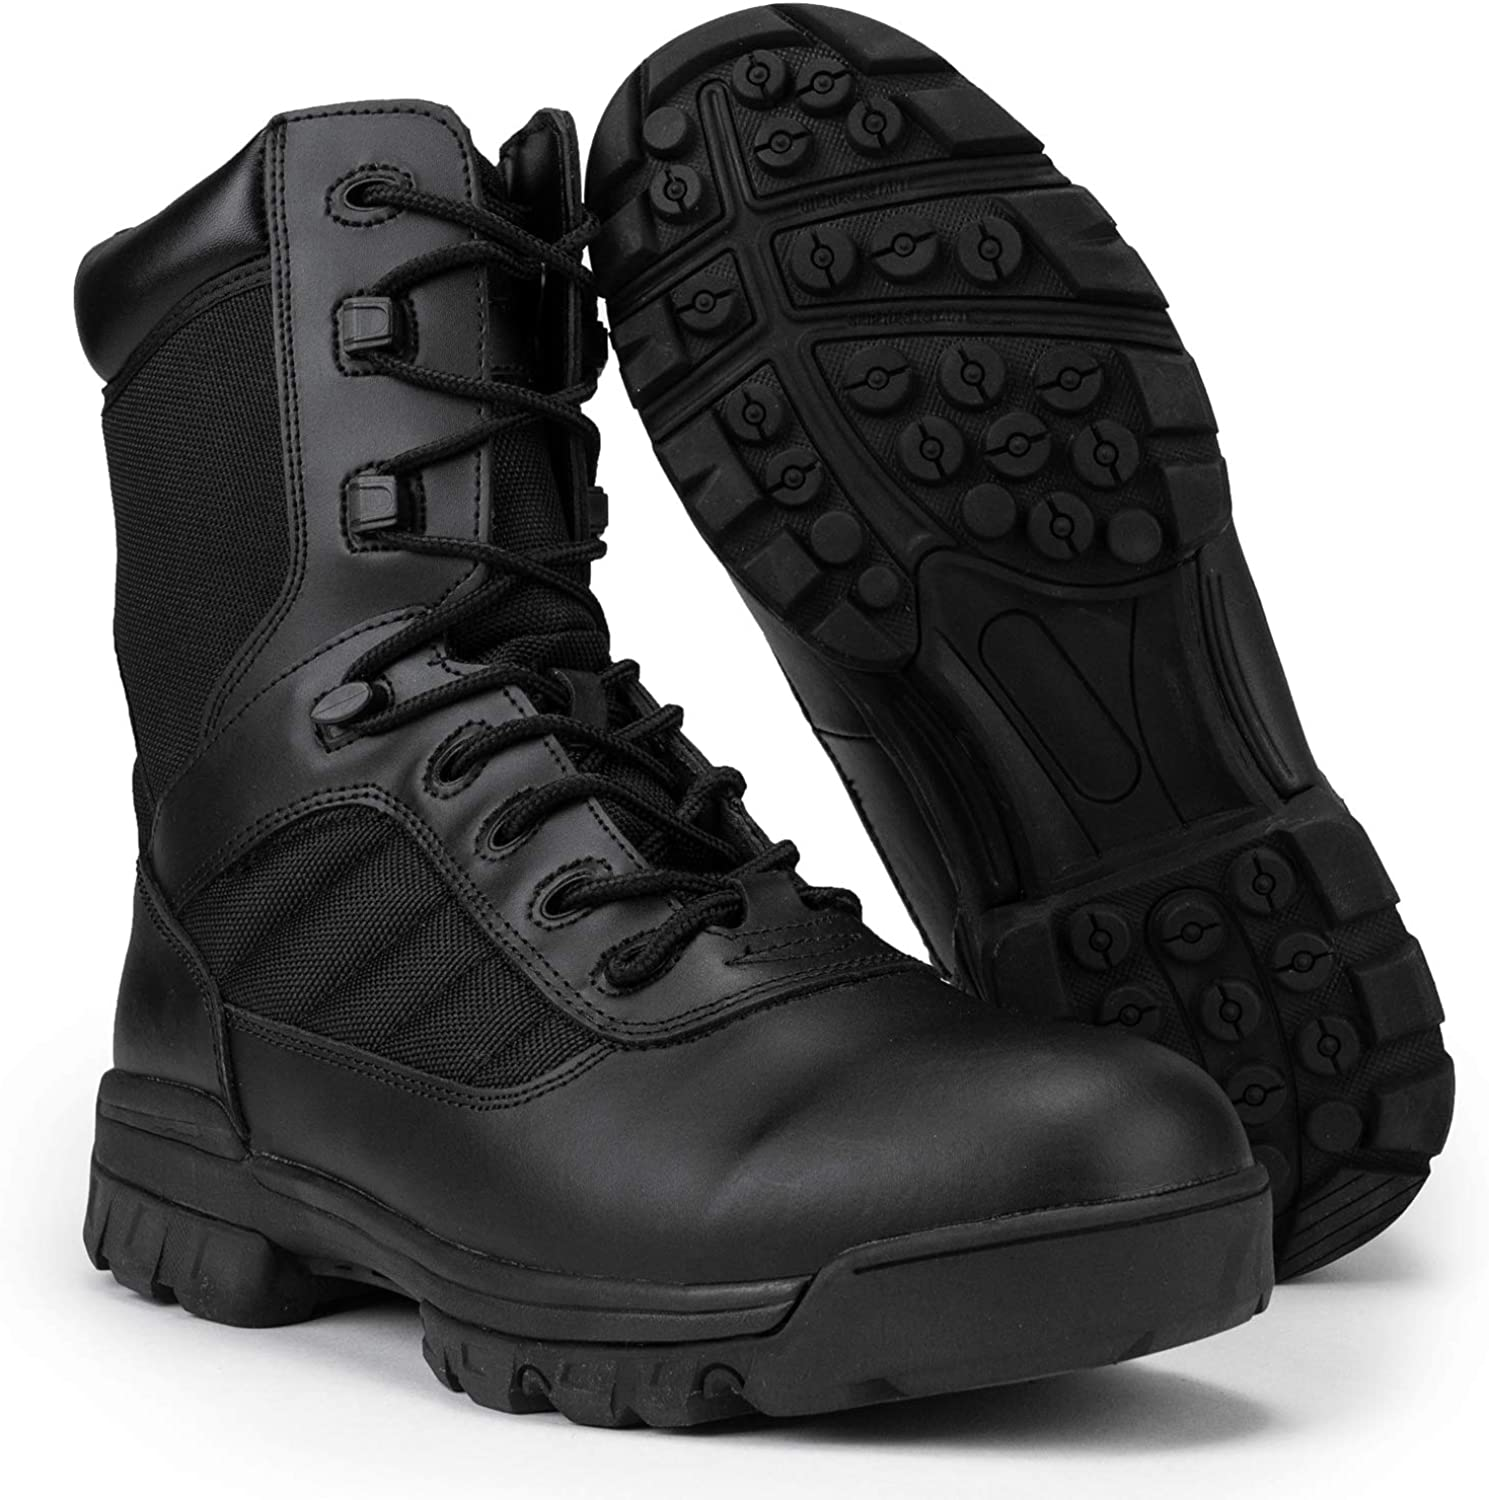 RYNO GEAR Men's Black Tactical Lining Max 71% OFF Boots with Super sale period limited CoolMax Combat